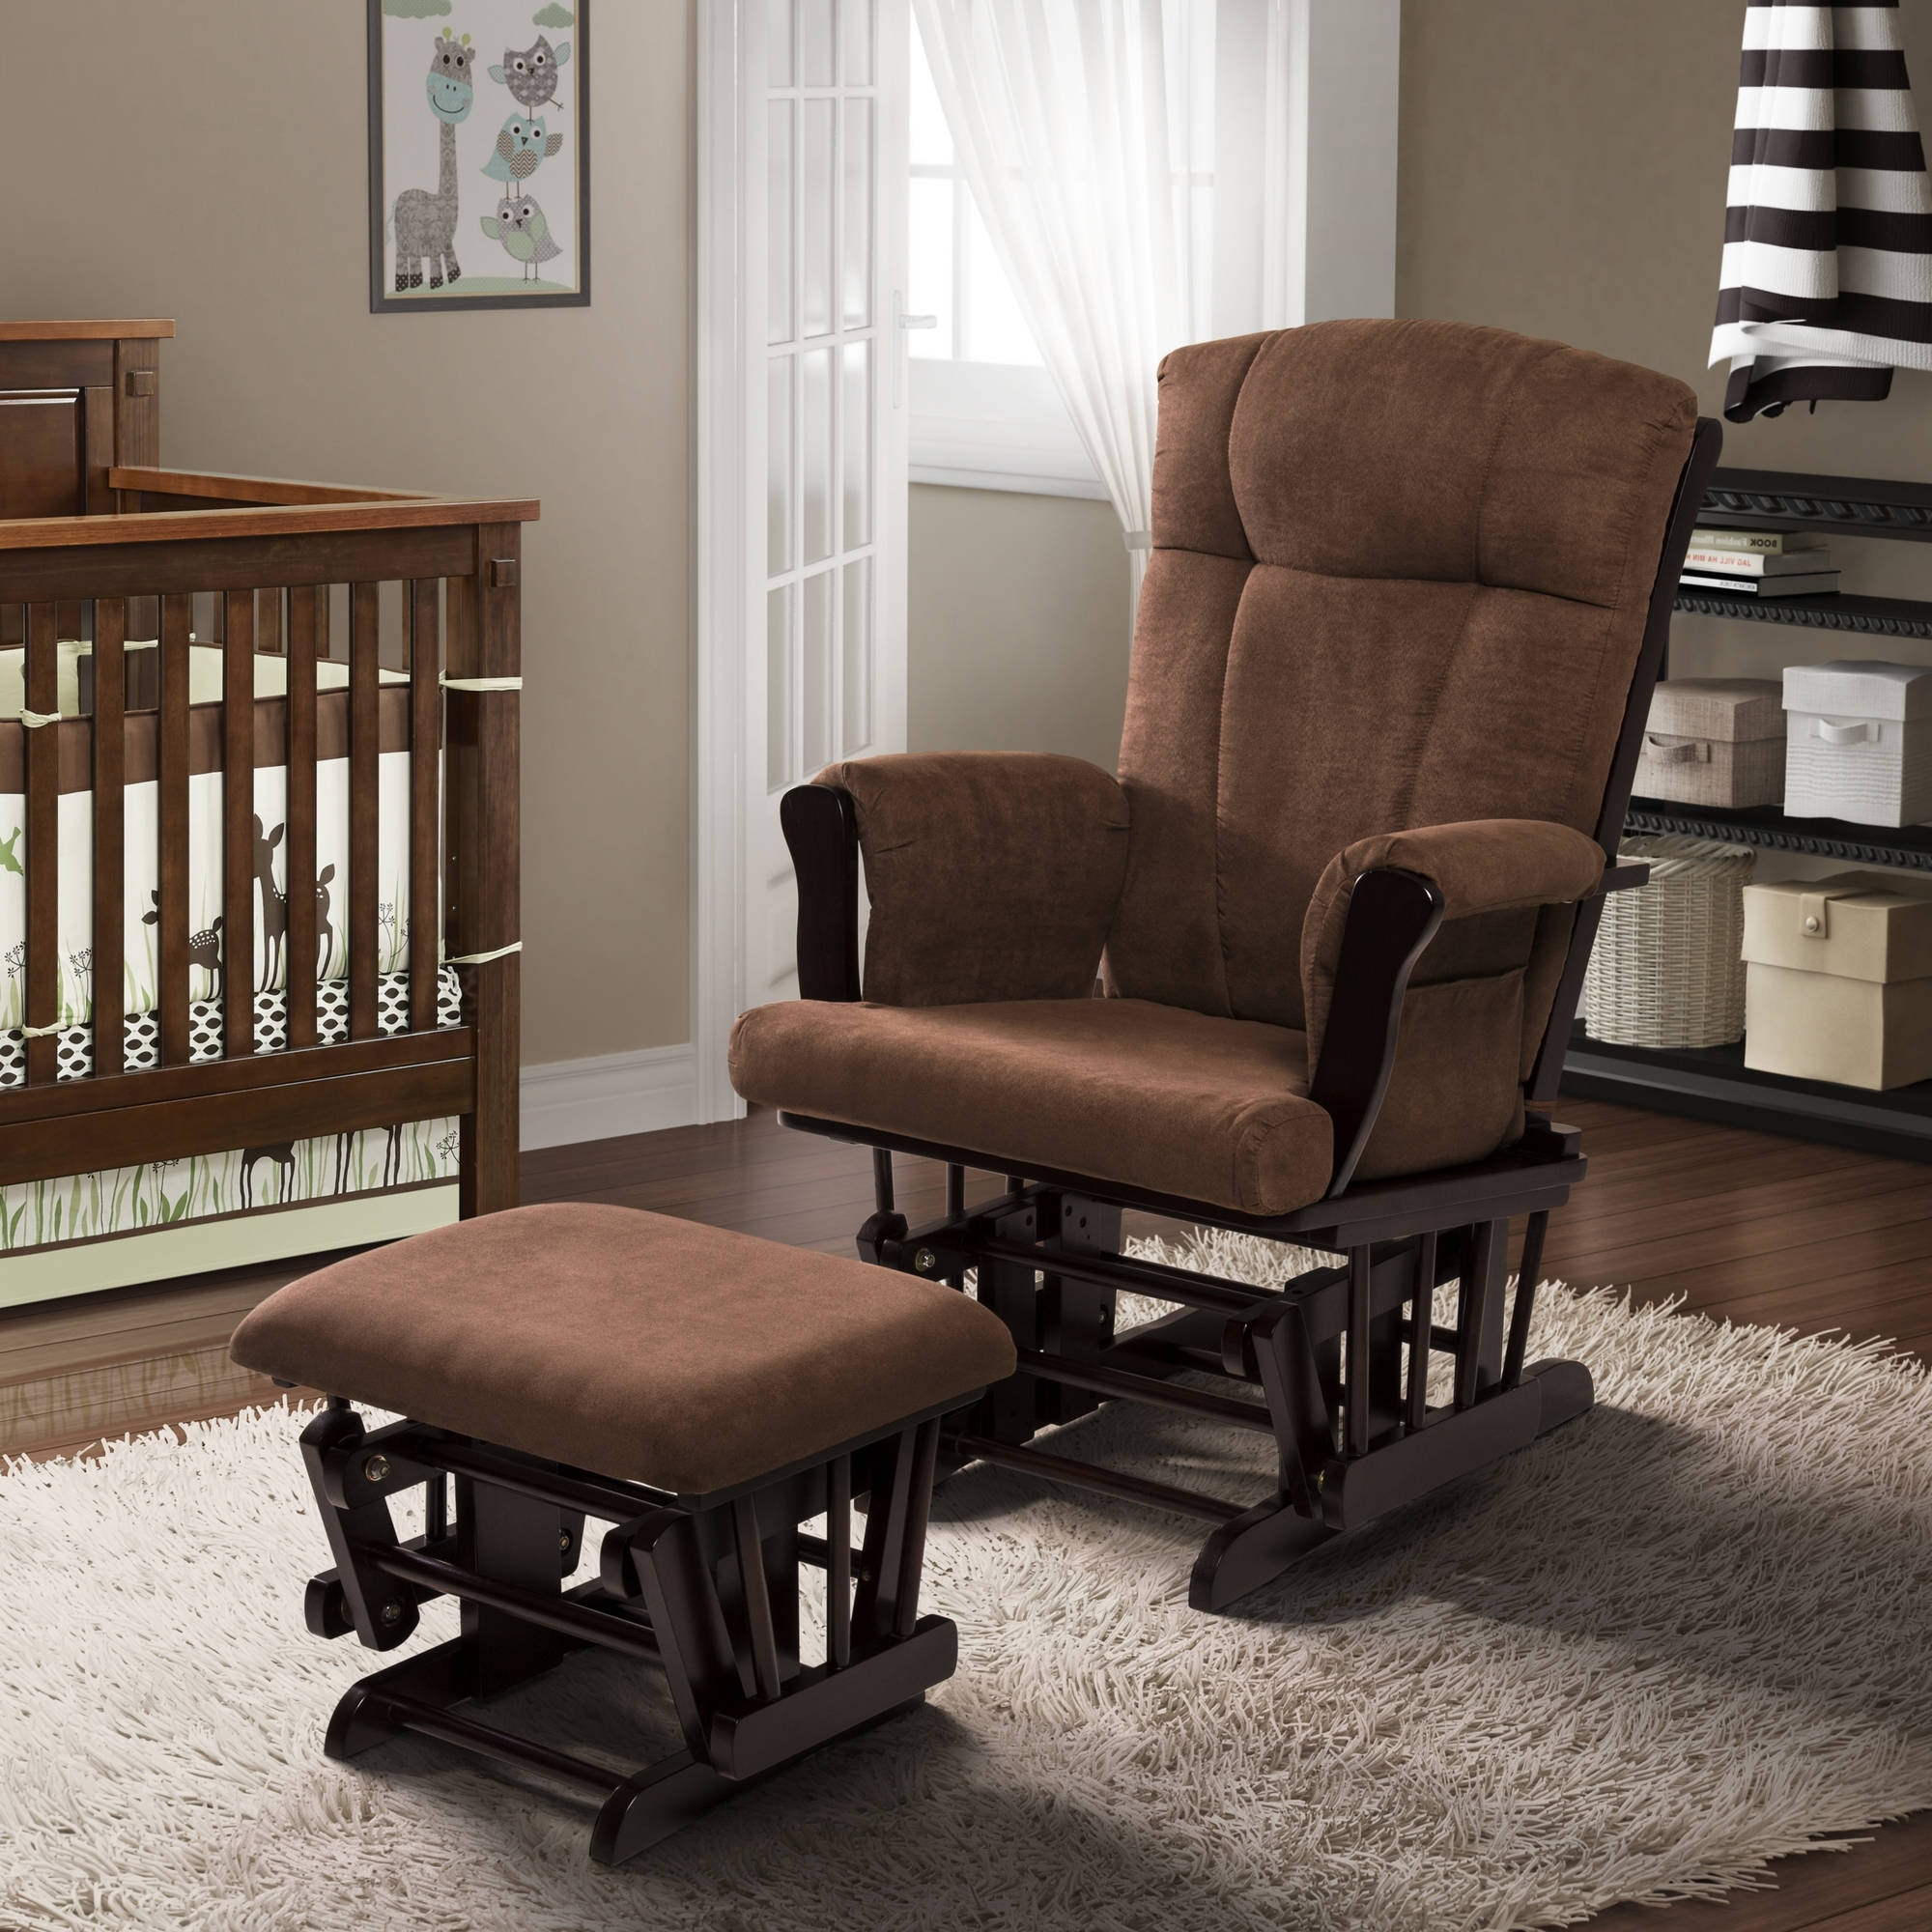 Preferred Rocking Chairs With Ottoman With Regard To Baby Relax Glider Rocker And Ottoman Espresso With Chocolate (View 13 of 20)